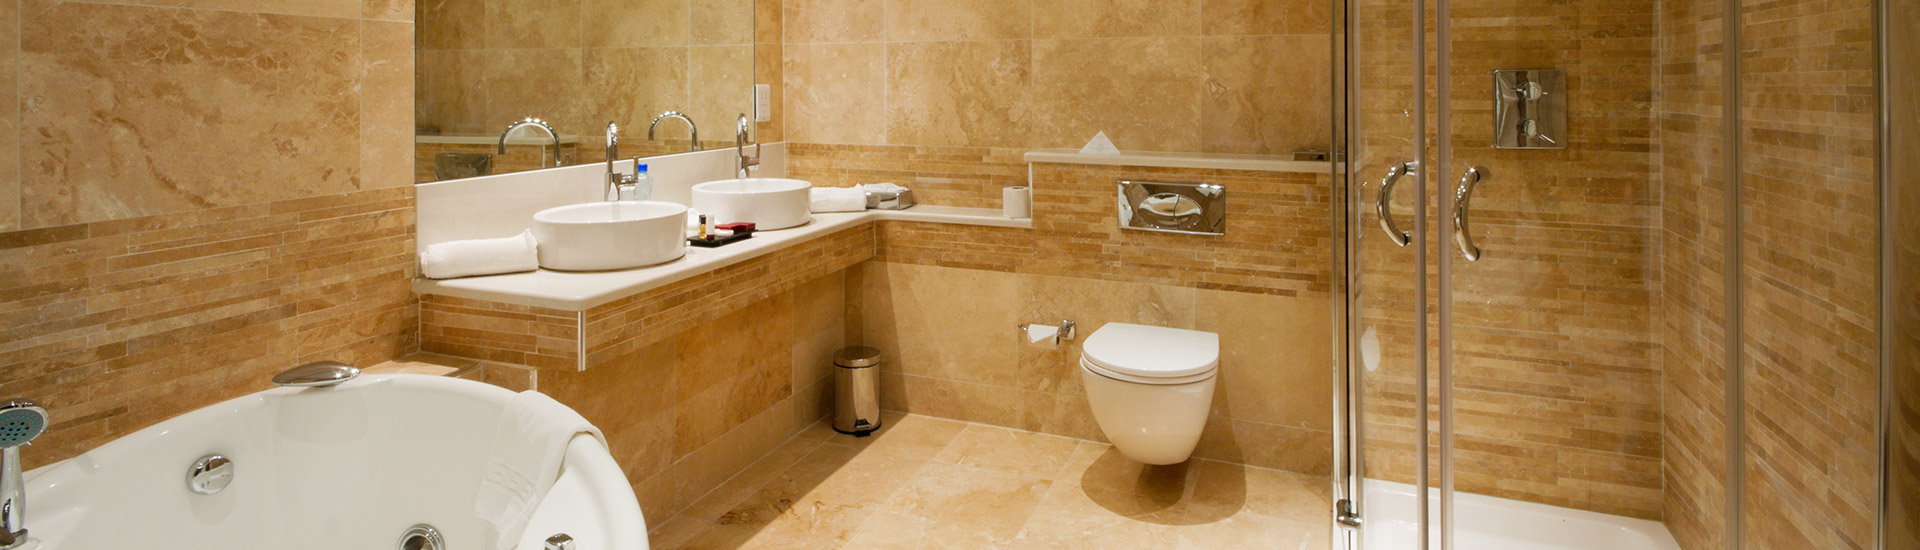 Custom bathroom vanities renovations in las vegas - Bathroom remodeling las vegas nv ...